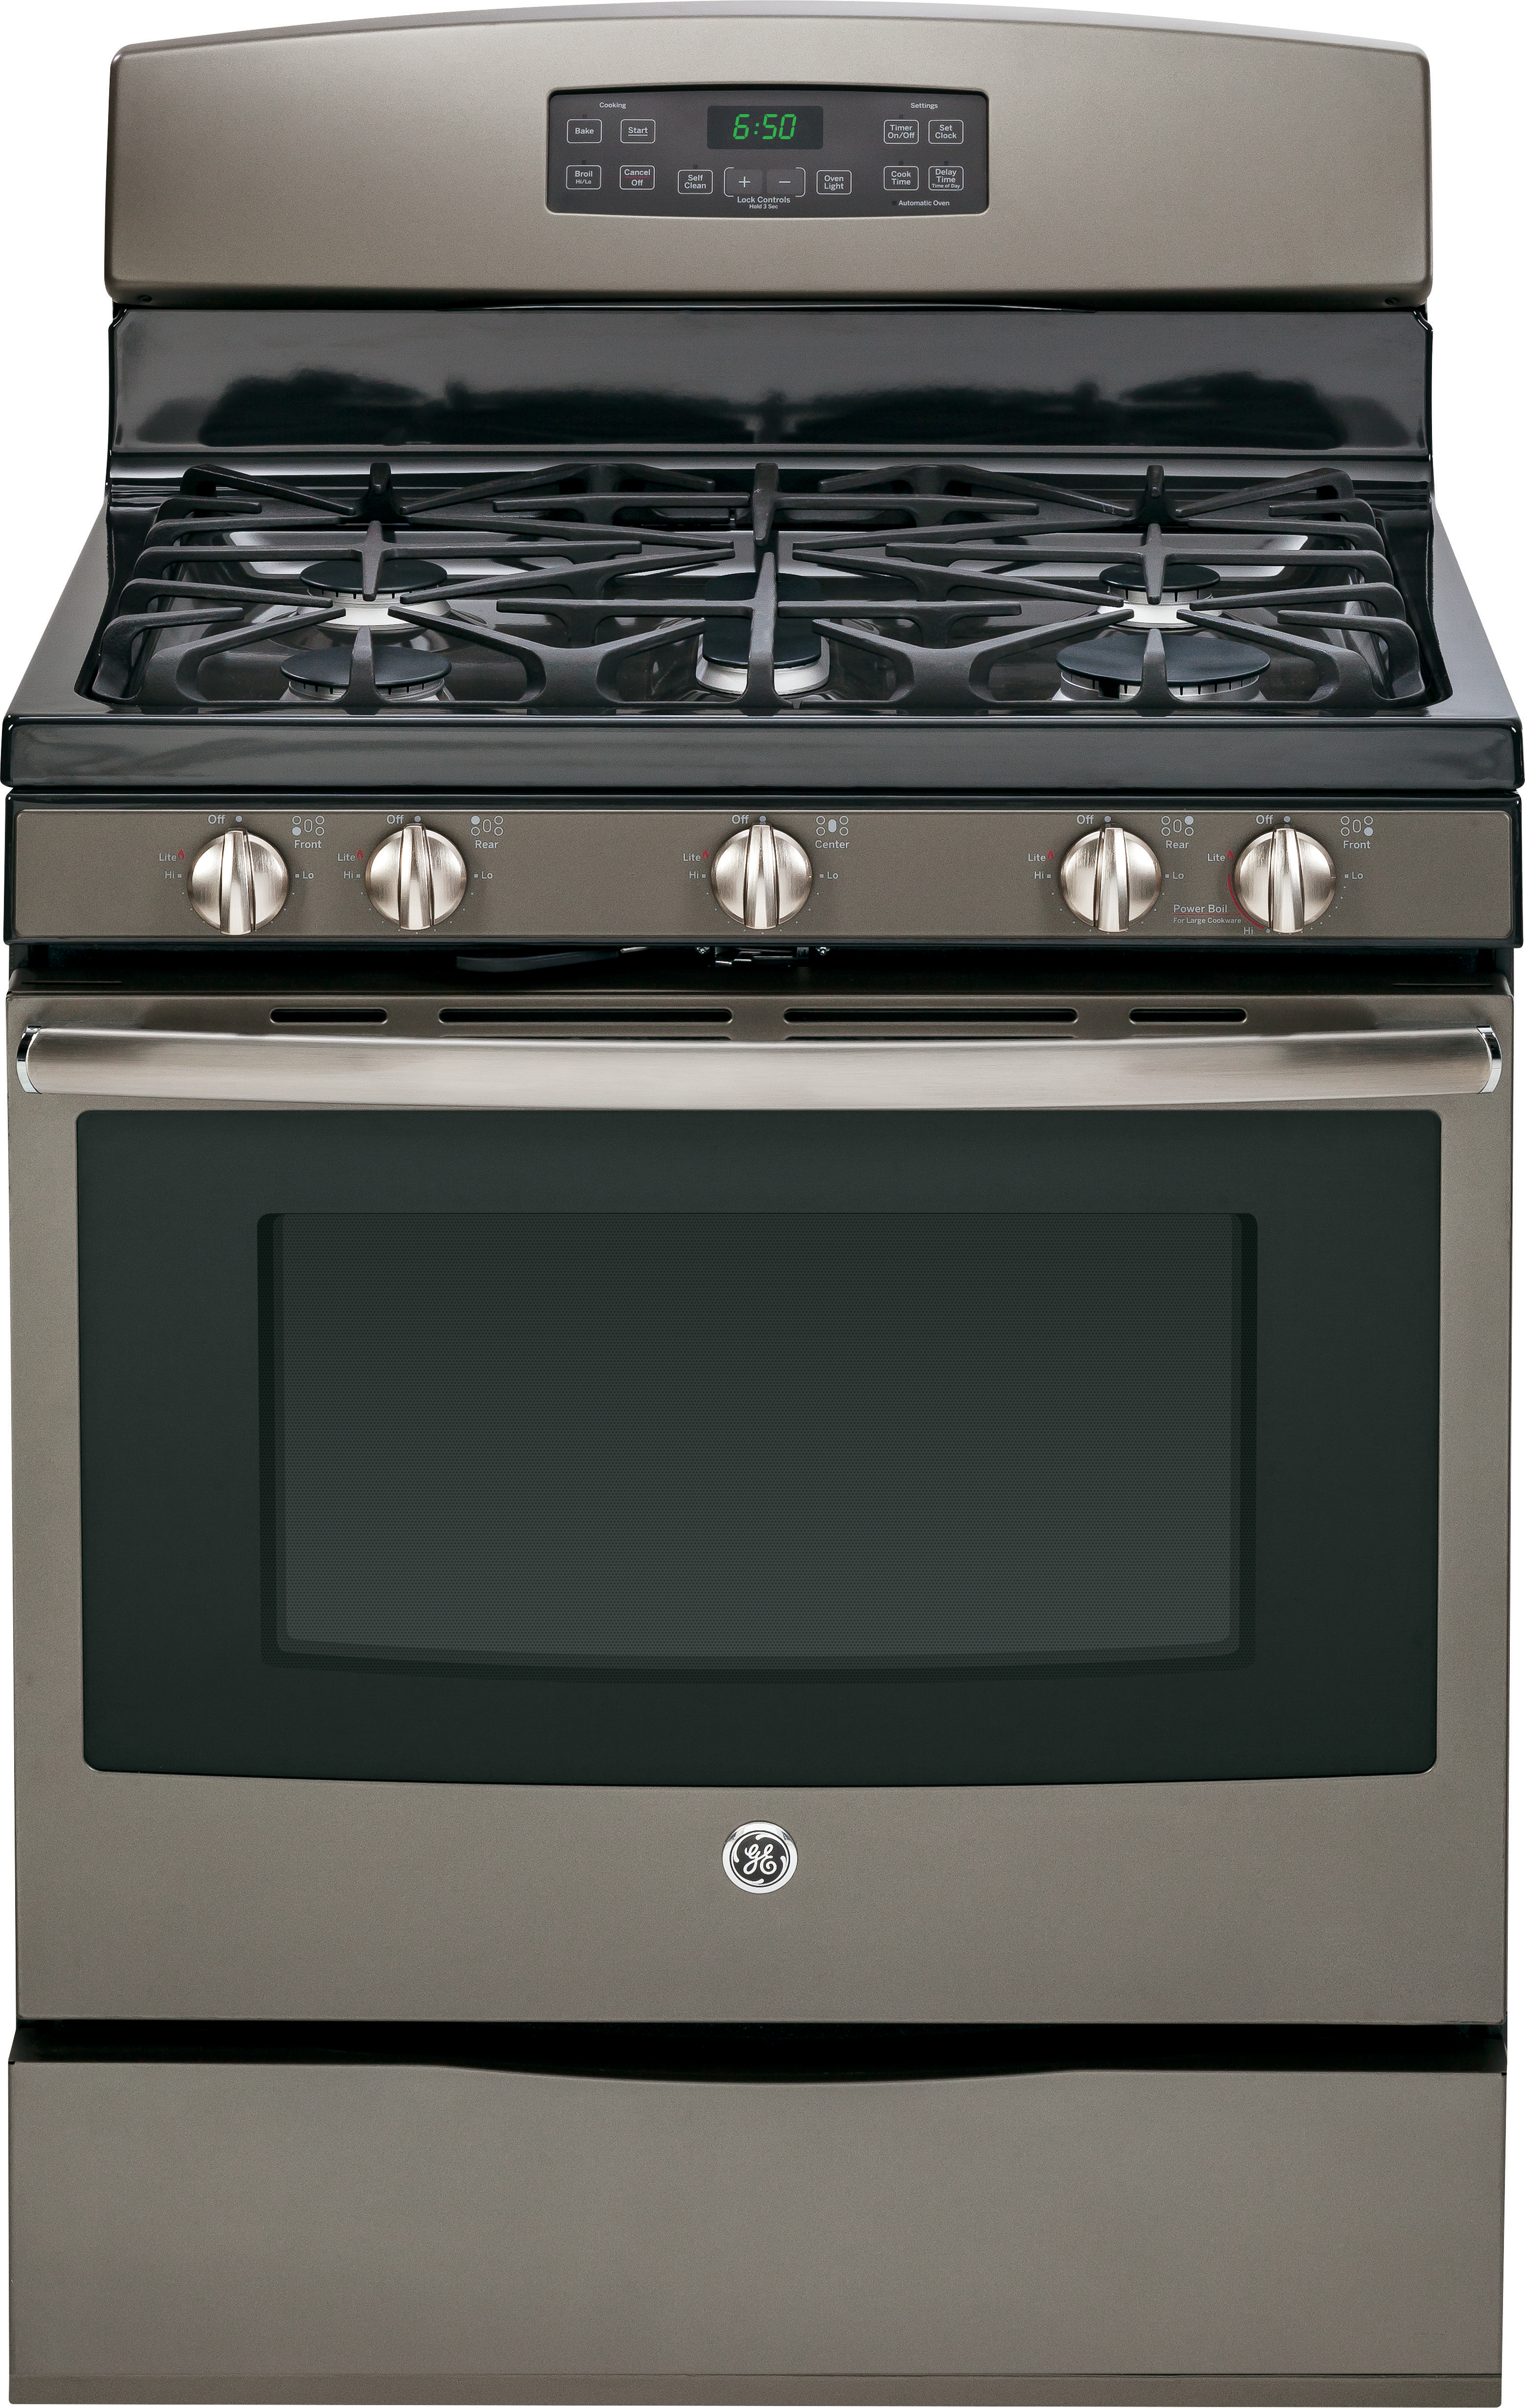 Kitchens With Slate Appliances Sleek And Chic Ge Expands Popular Slate Finish To More Appliances